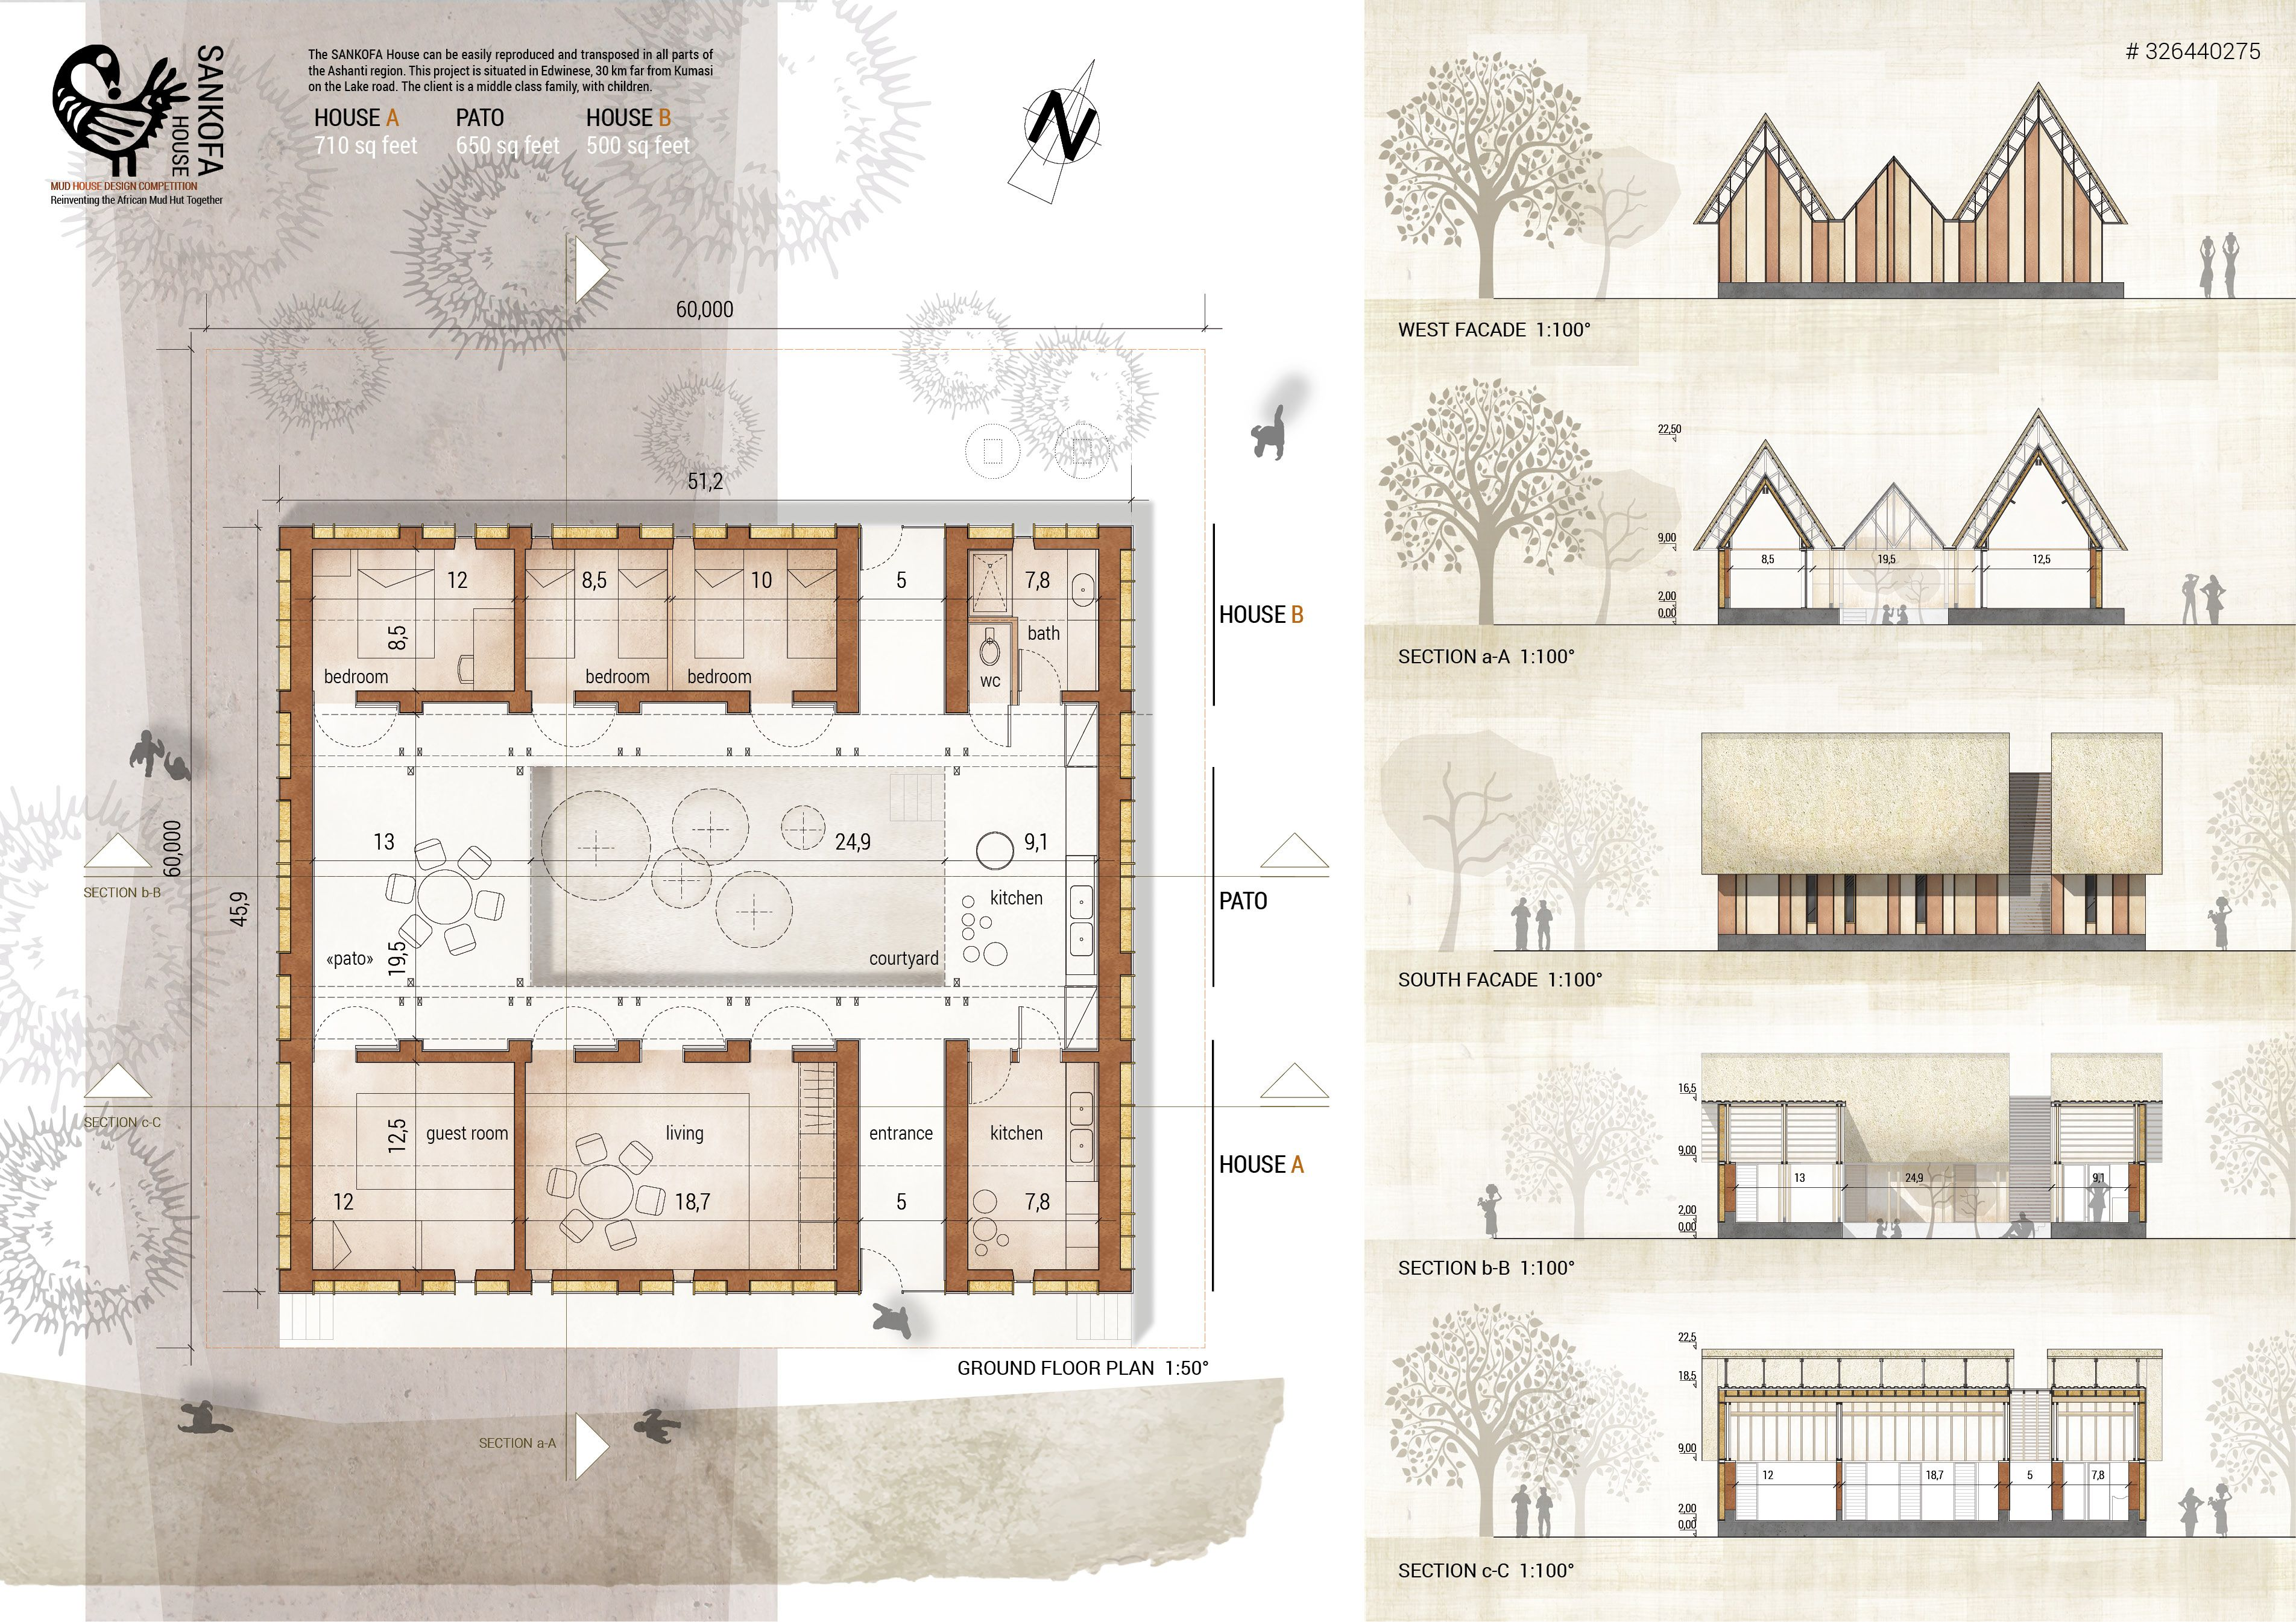 Architecture Drawing Competition 2014 http://thecompetitionsblog/results/2014/10/winners-mud-house